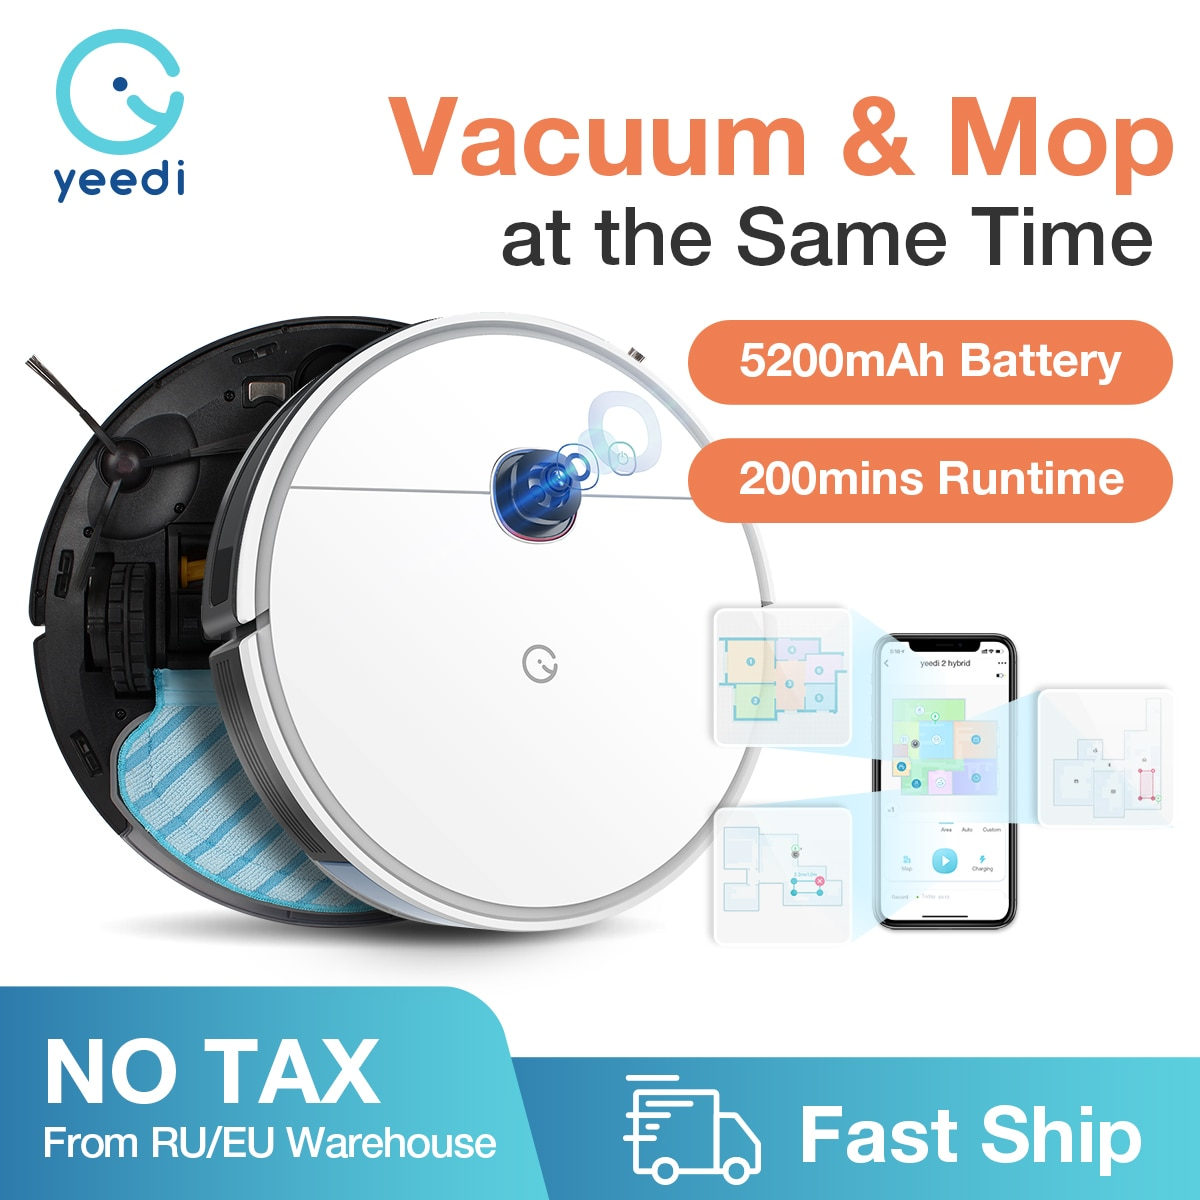 yeedi 2 hybrid Robot Vacuum Cleaner Visual Navigation,Sweep Mop 3in1,Virtual Boundary,2500Pa 200mins Runtime,Customize Cleaning